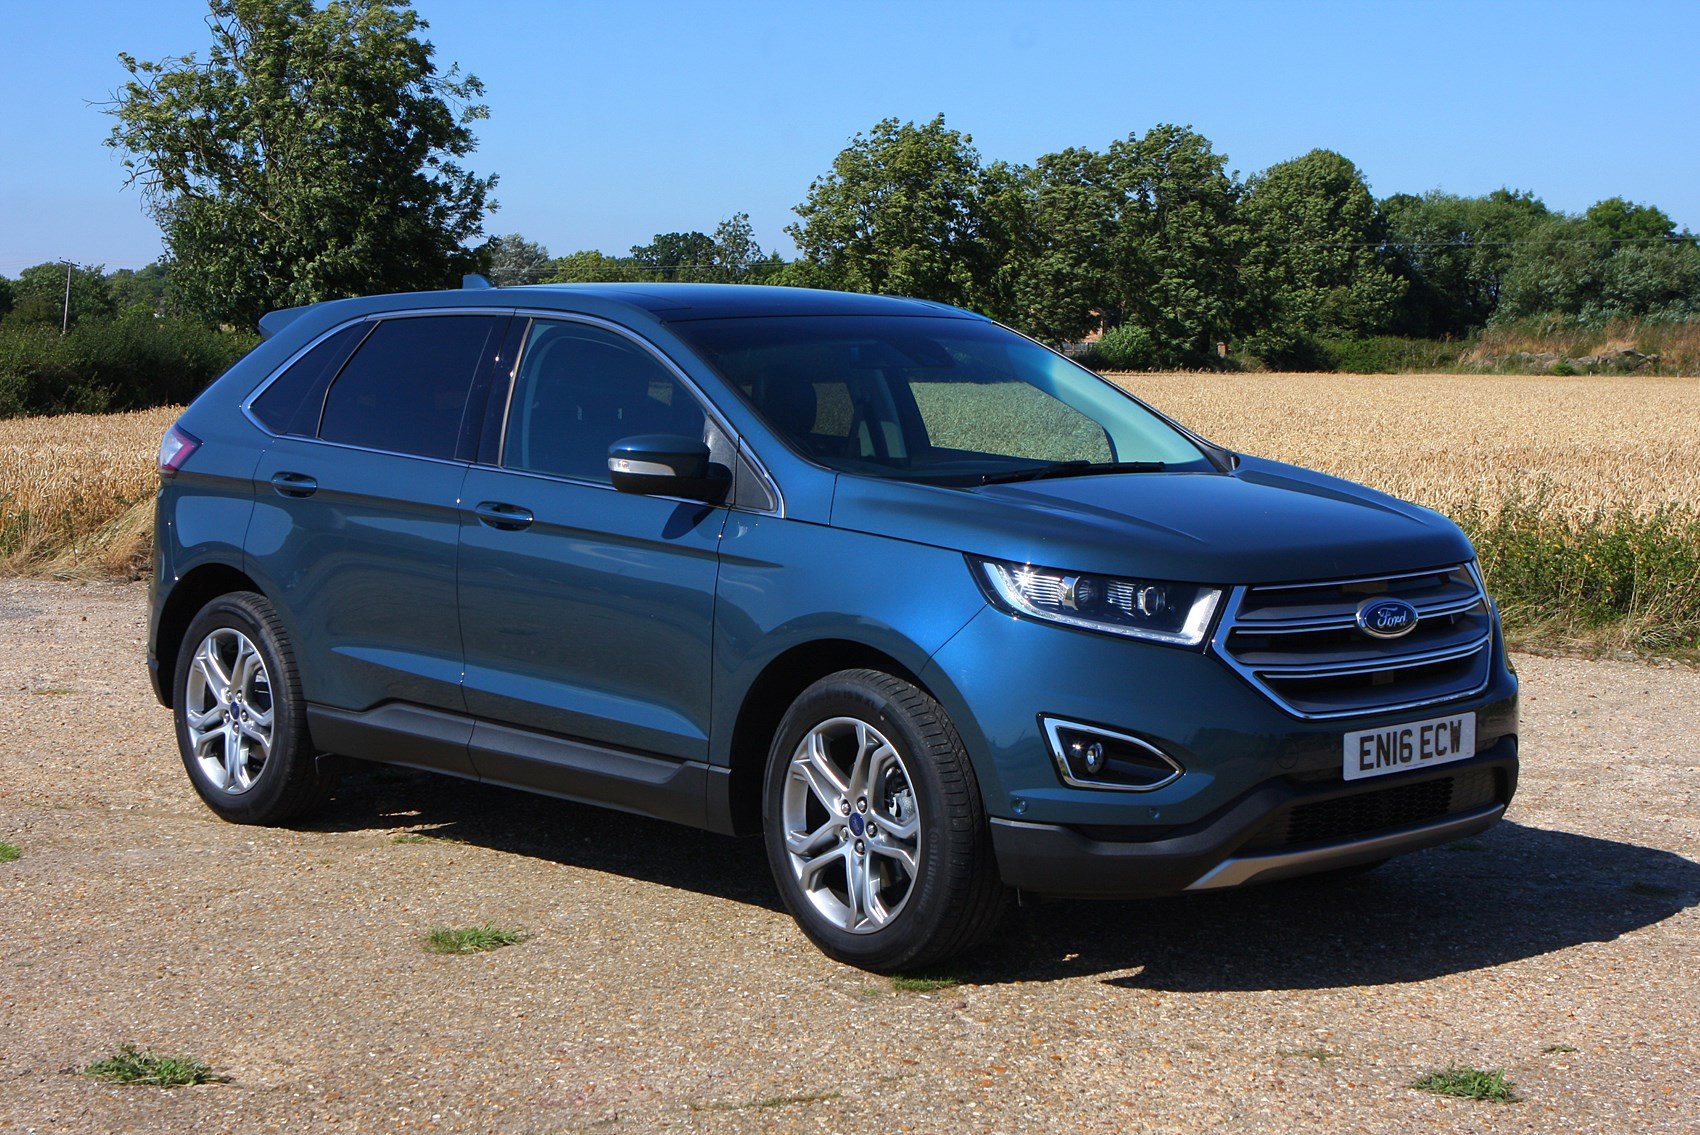 ford edge 4x4 review 2015 parkers. Black Bedroom Furniture Sets. Home Design Ideas